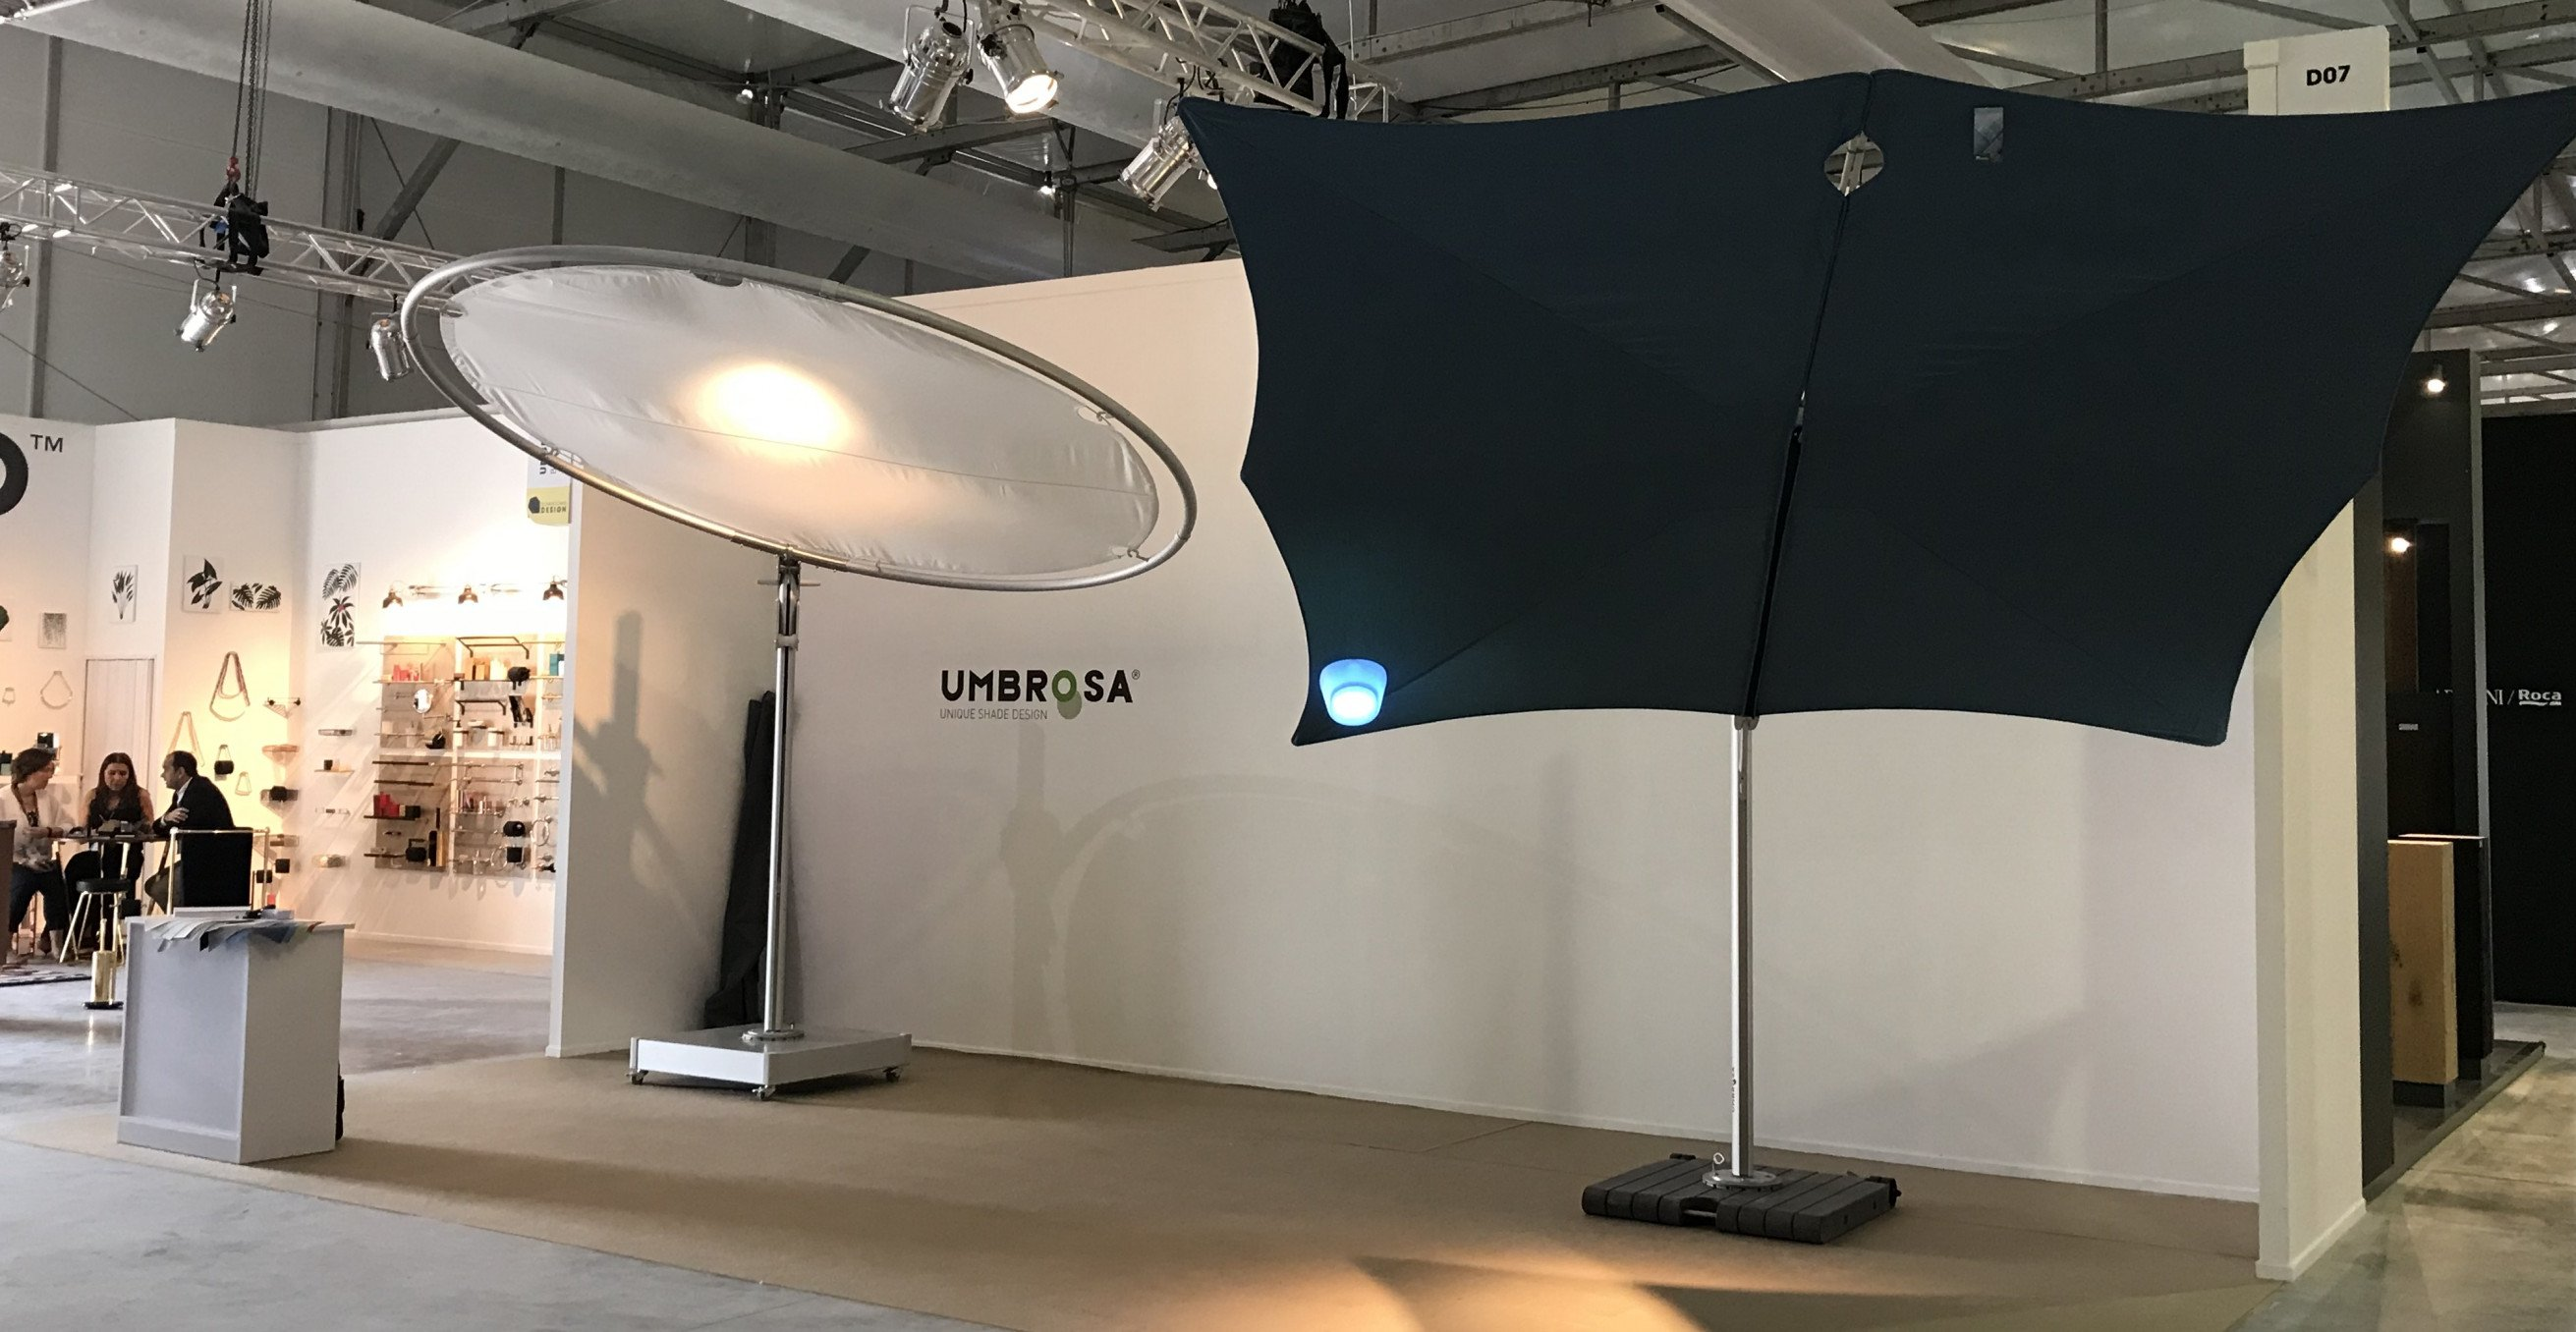 Umbrosa demonstrates the unique design umbrellas Spectra and Eclipsum at the design fair in the middle east.